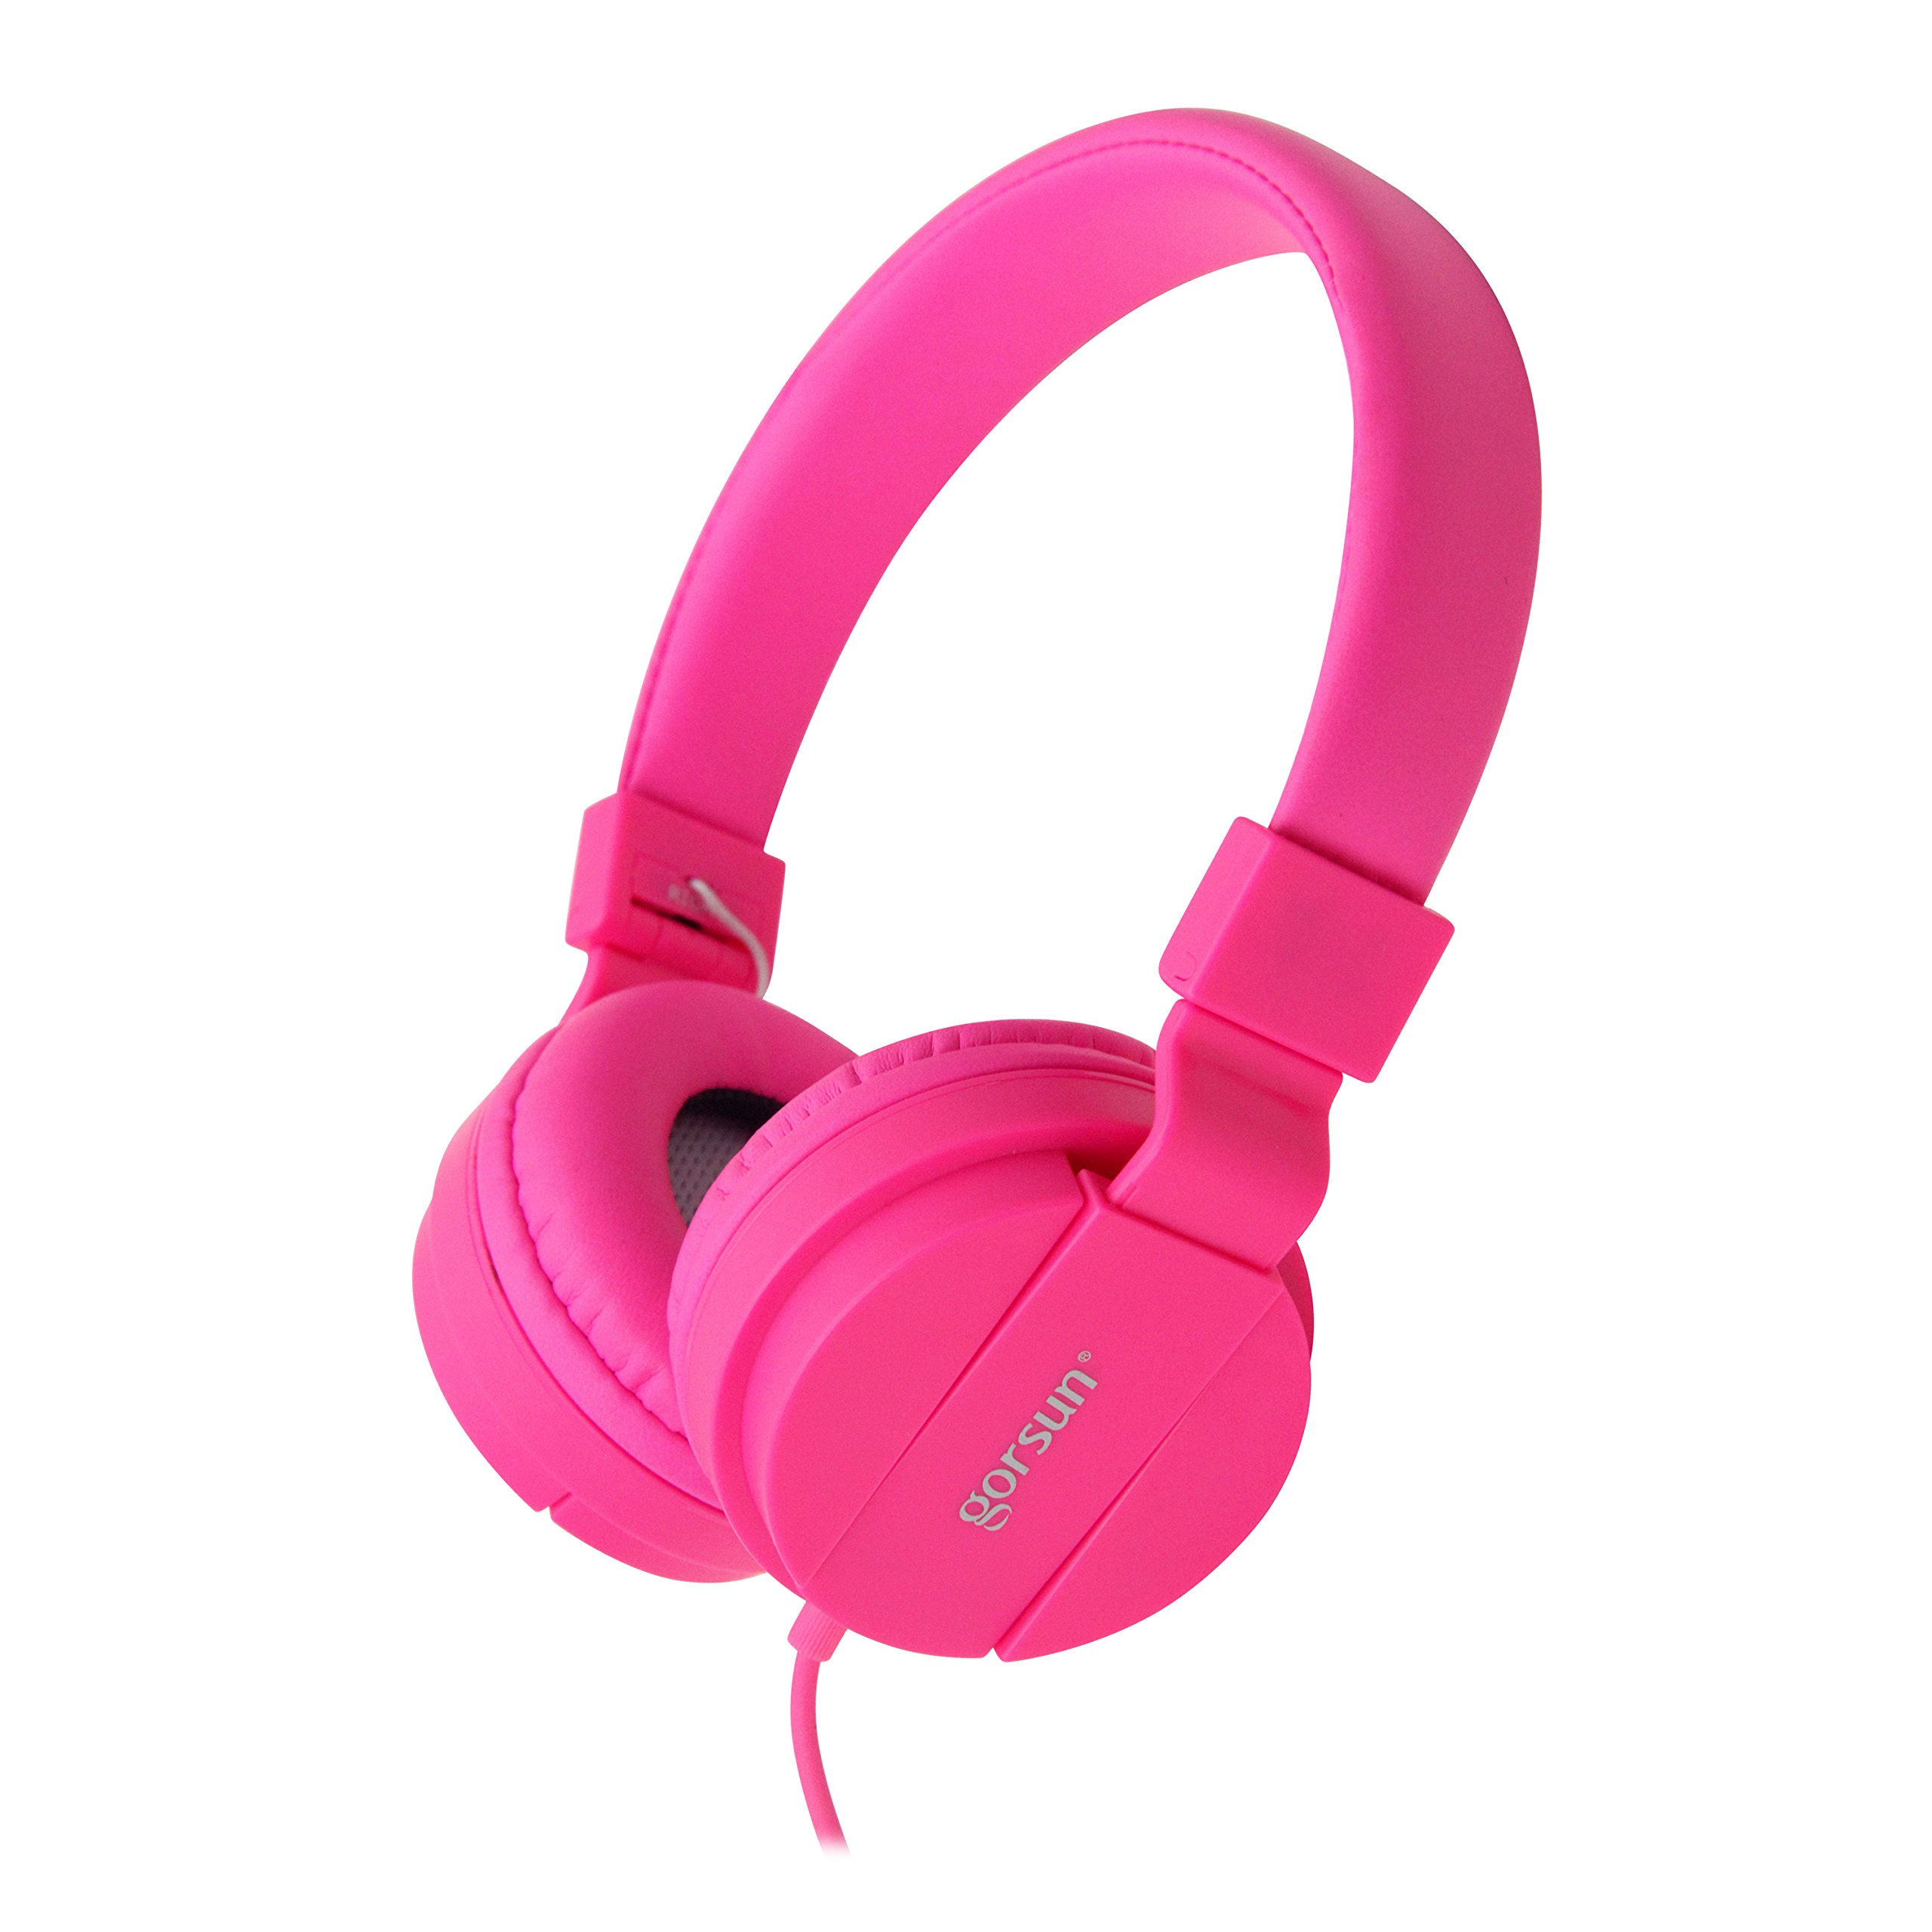 ONTA gorsun Foldable On Ear Audio Adjustable Lightweight Headphone for kids Cellphones Smartphones Iphone Laptop Computer Mp3/4 Earphones (pink) by ONTA